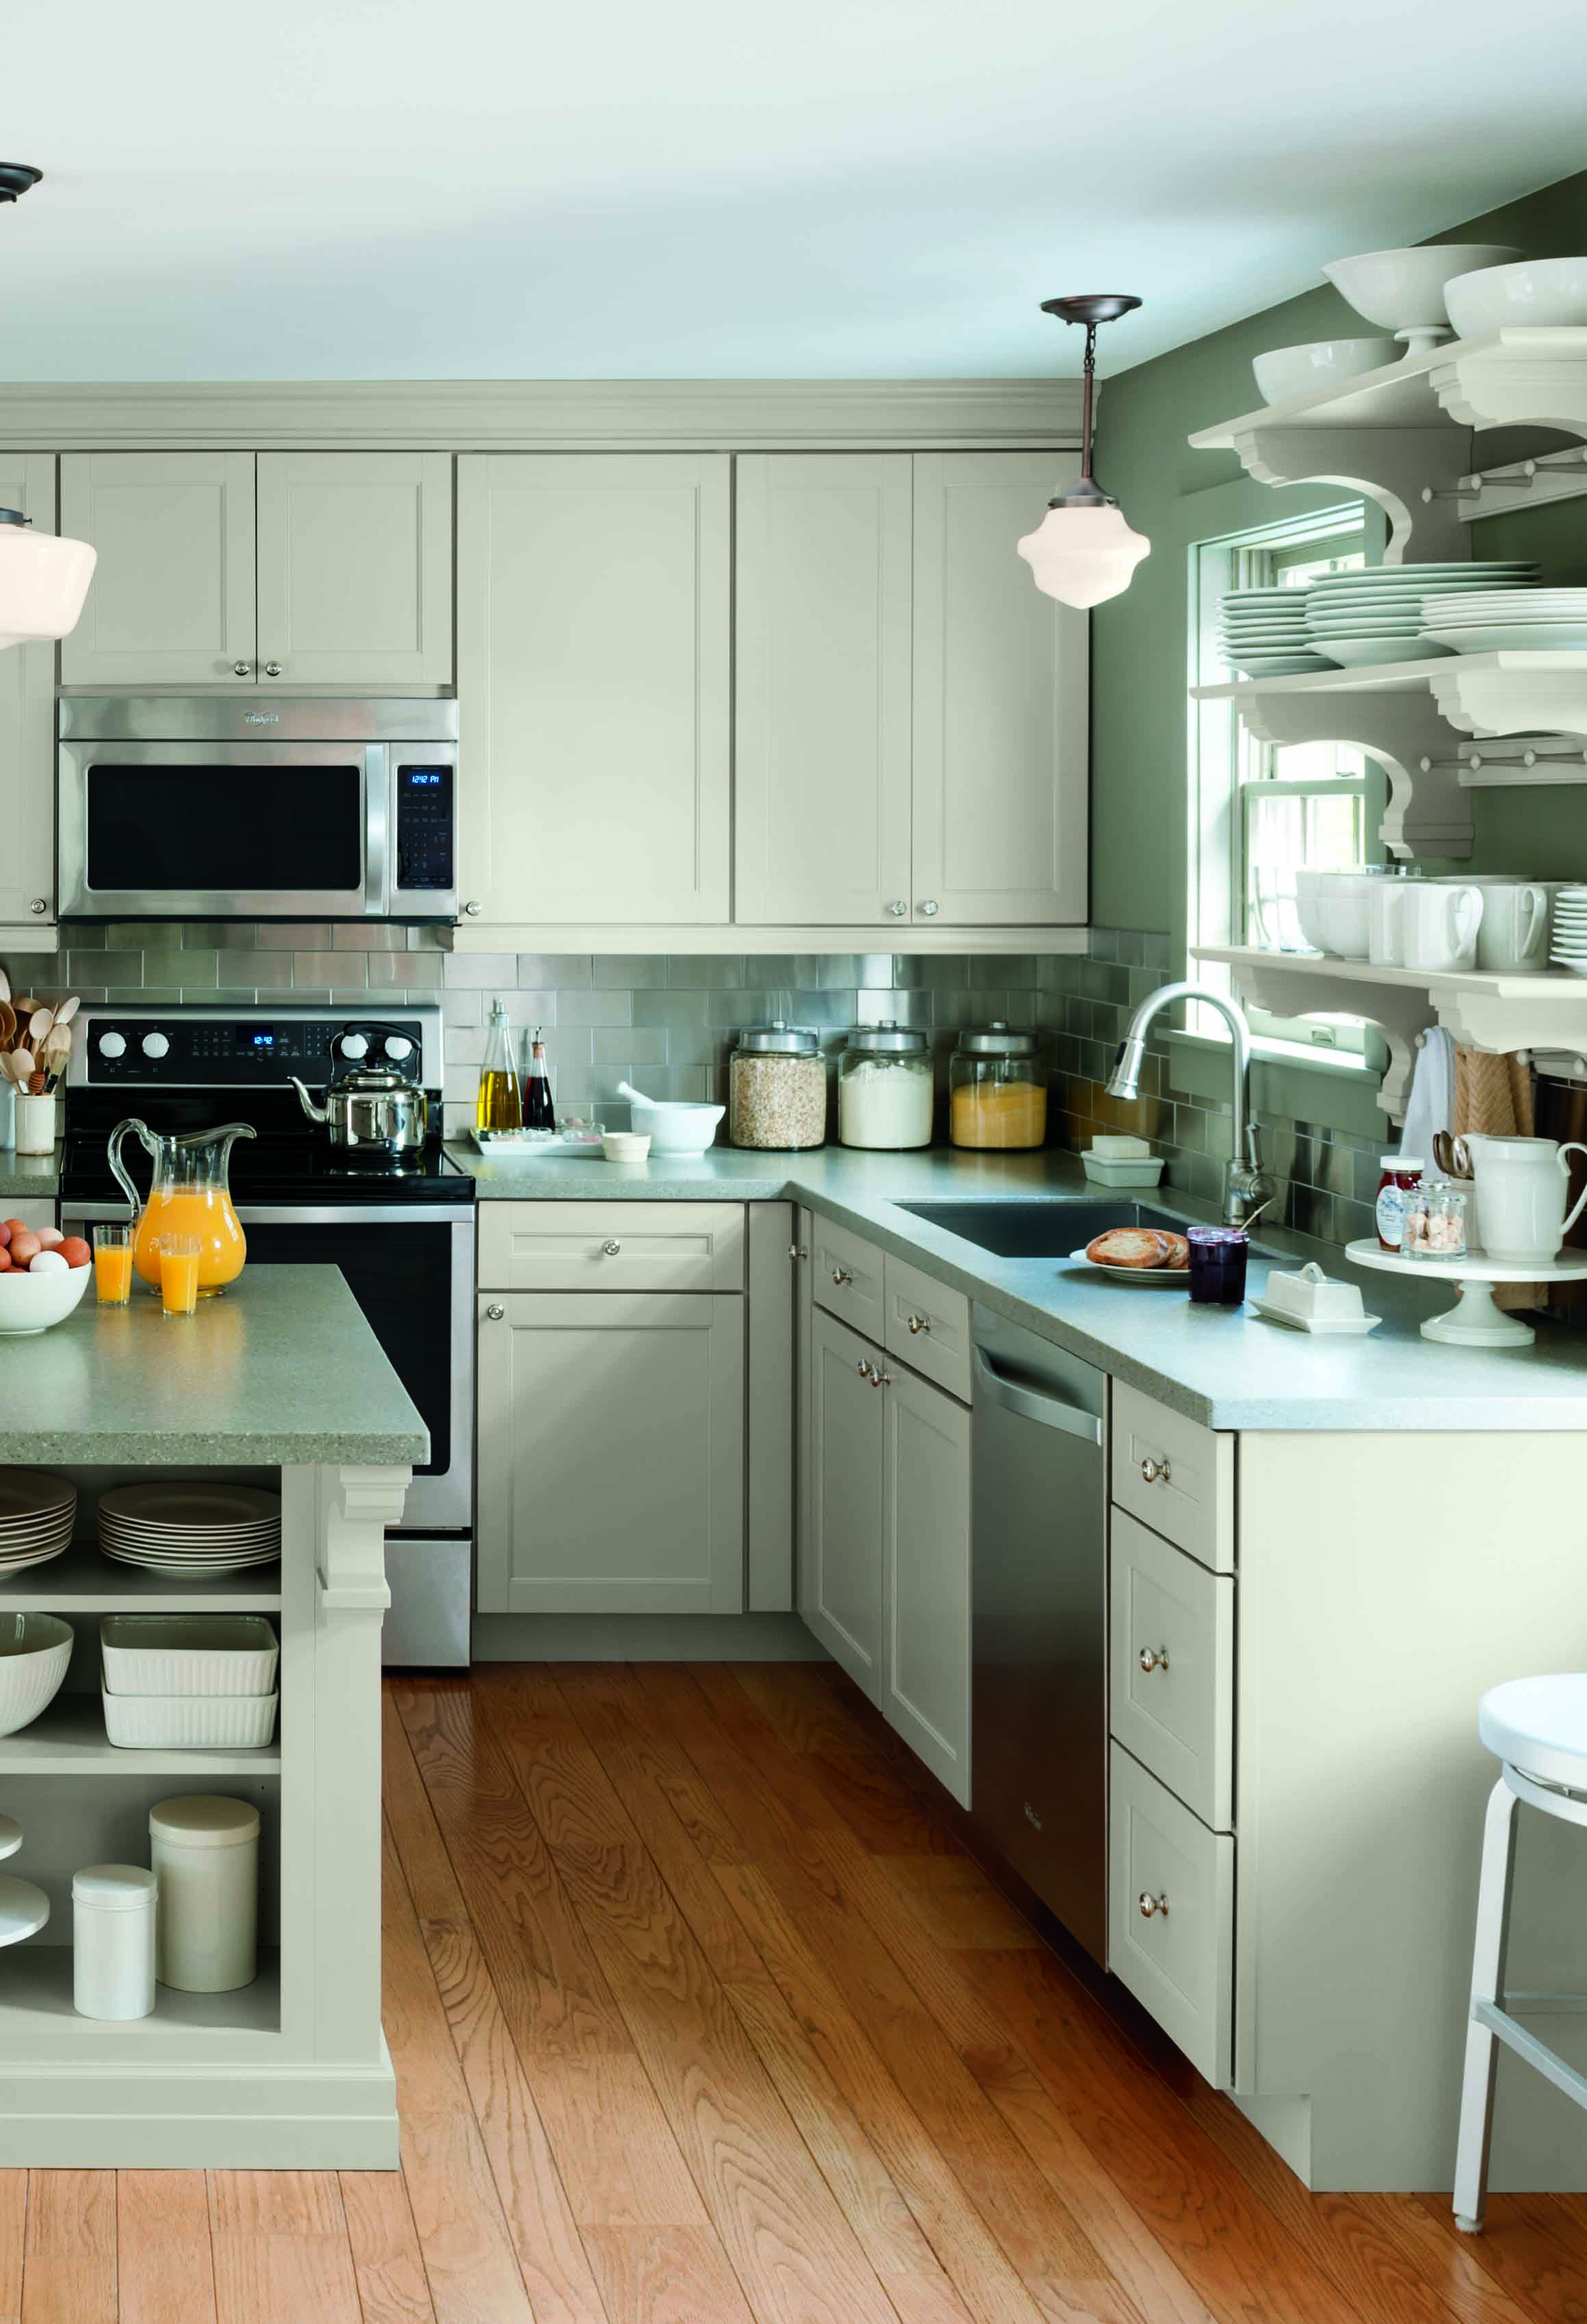 The Dream Kitchen You Ve Always Wanted At The Price You Can Afford Kuche Catchen Abnehmen